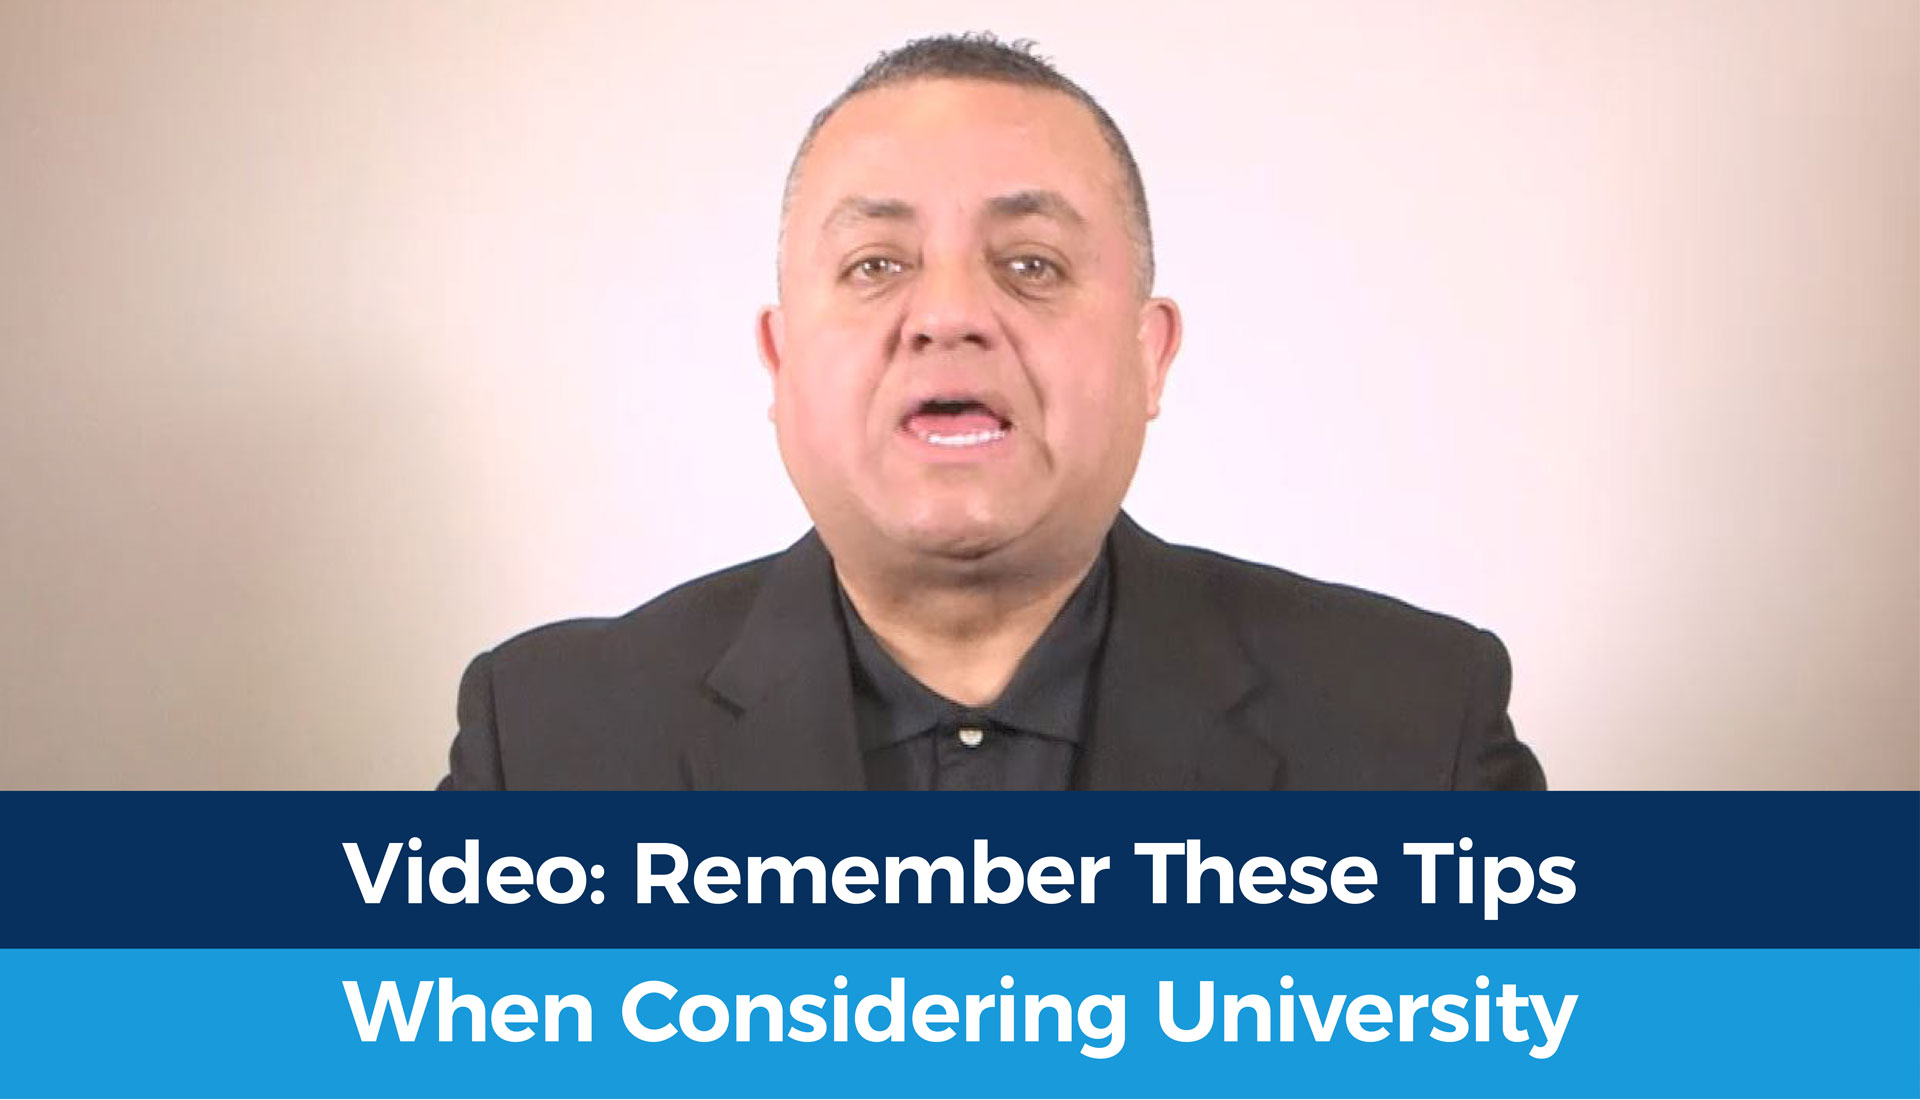 Video: Remember These Tips When Considering University